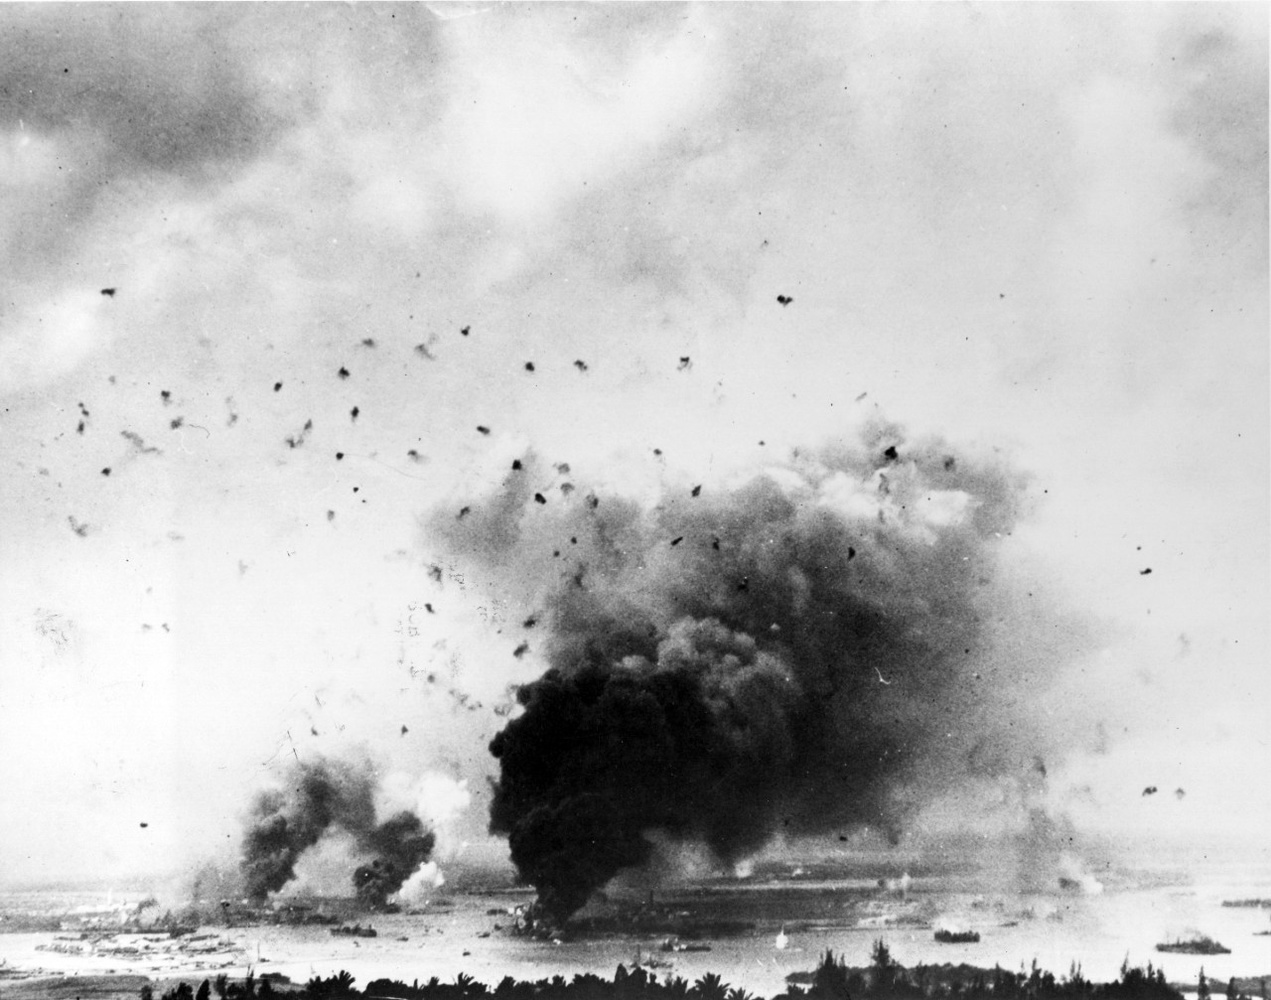 A view of Pearl Harbor looking southwest from the hills towards the north. Taken during the Japanese raid, with anti-aircraft shell bursts overhead. Large column of smoke in lower center is from USS Arizona.